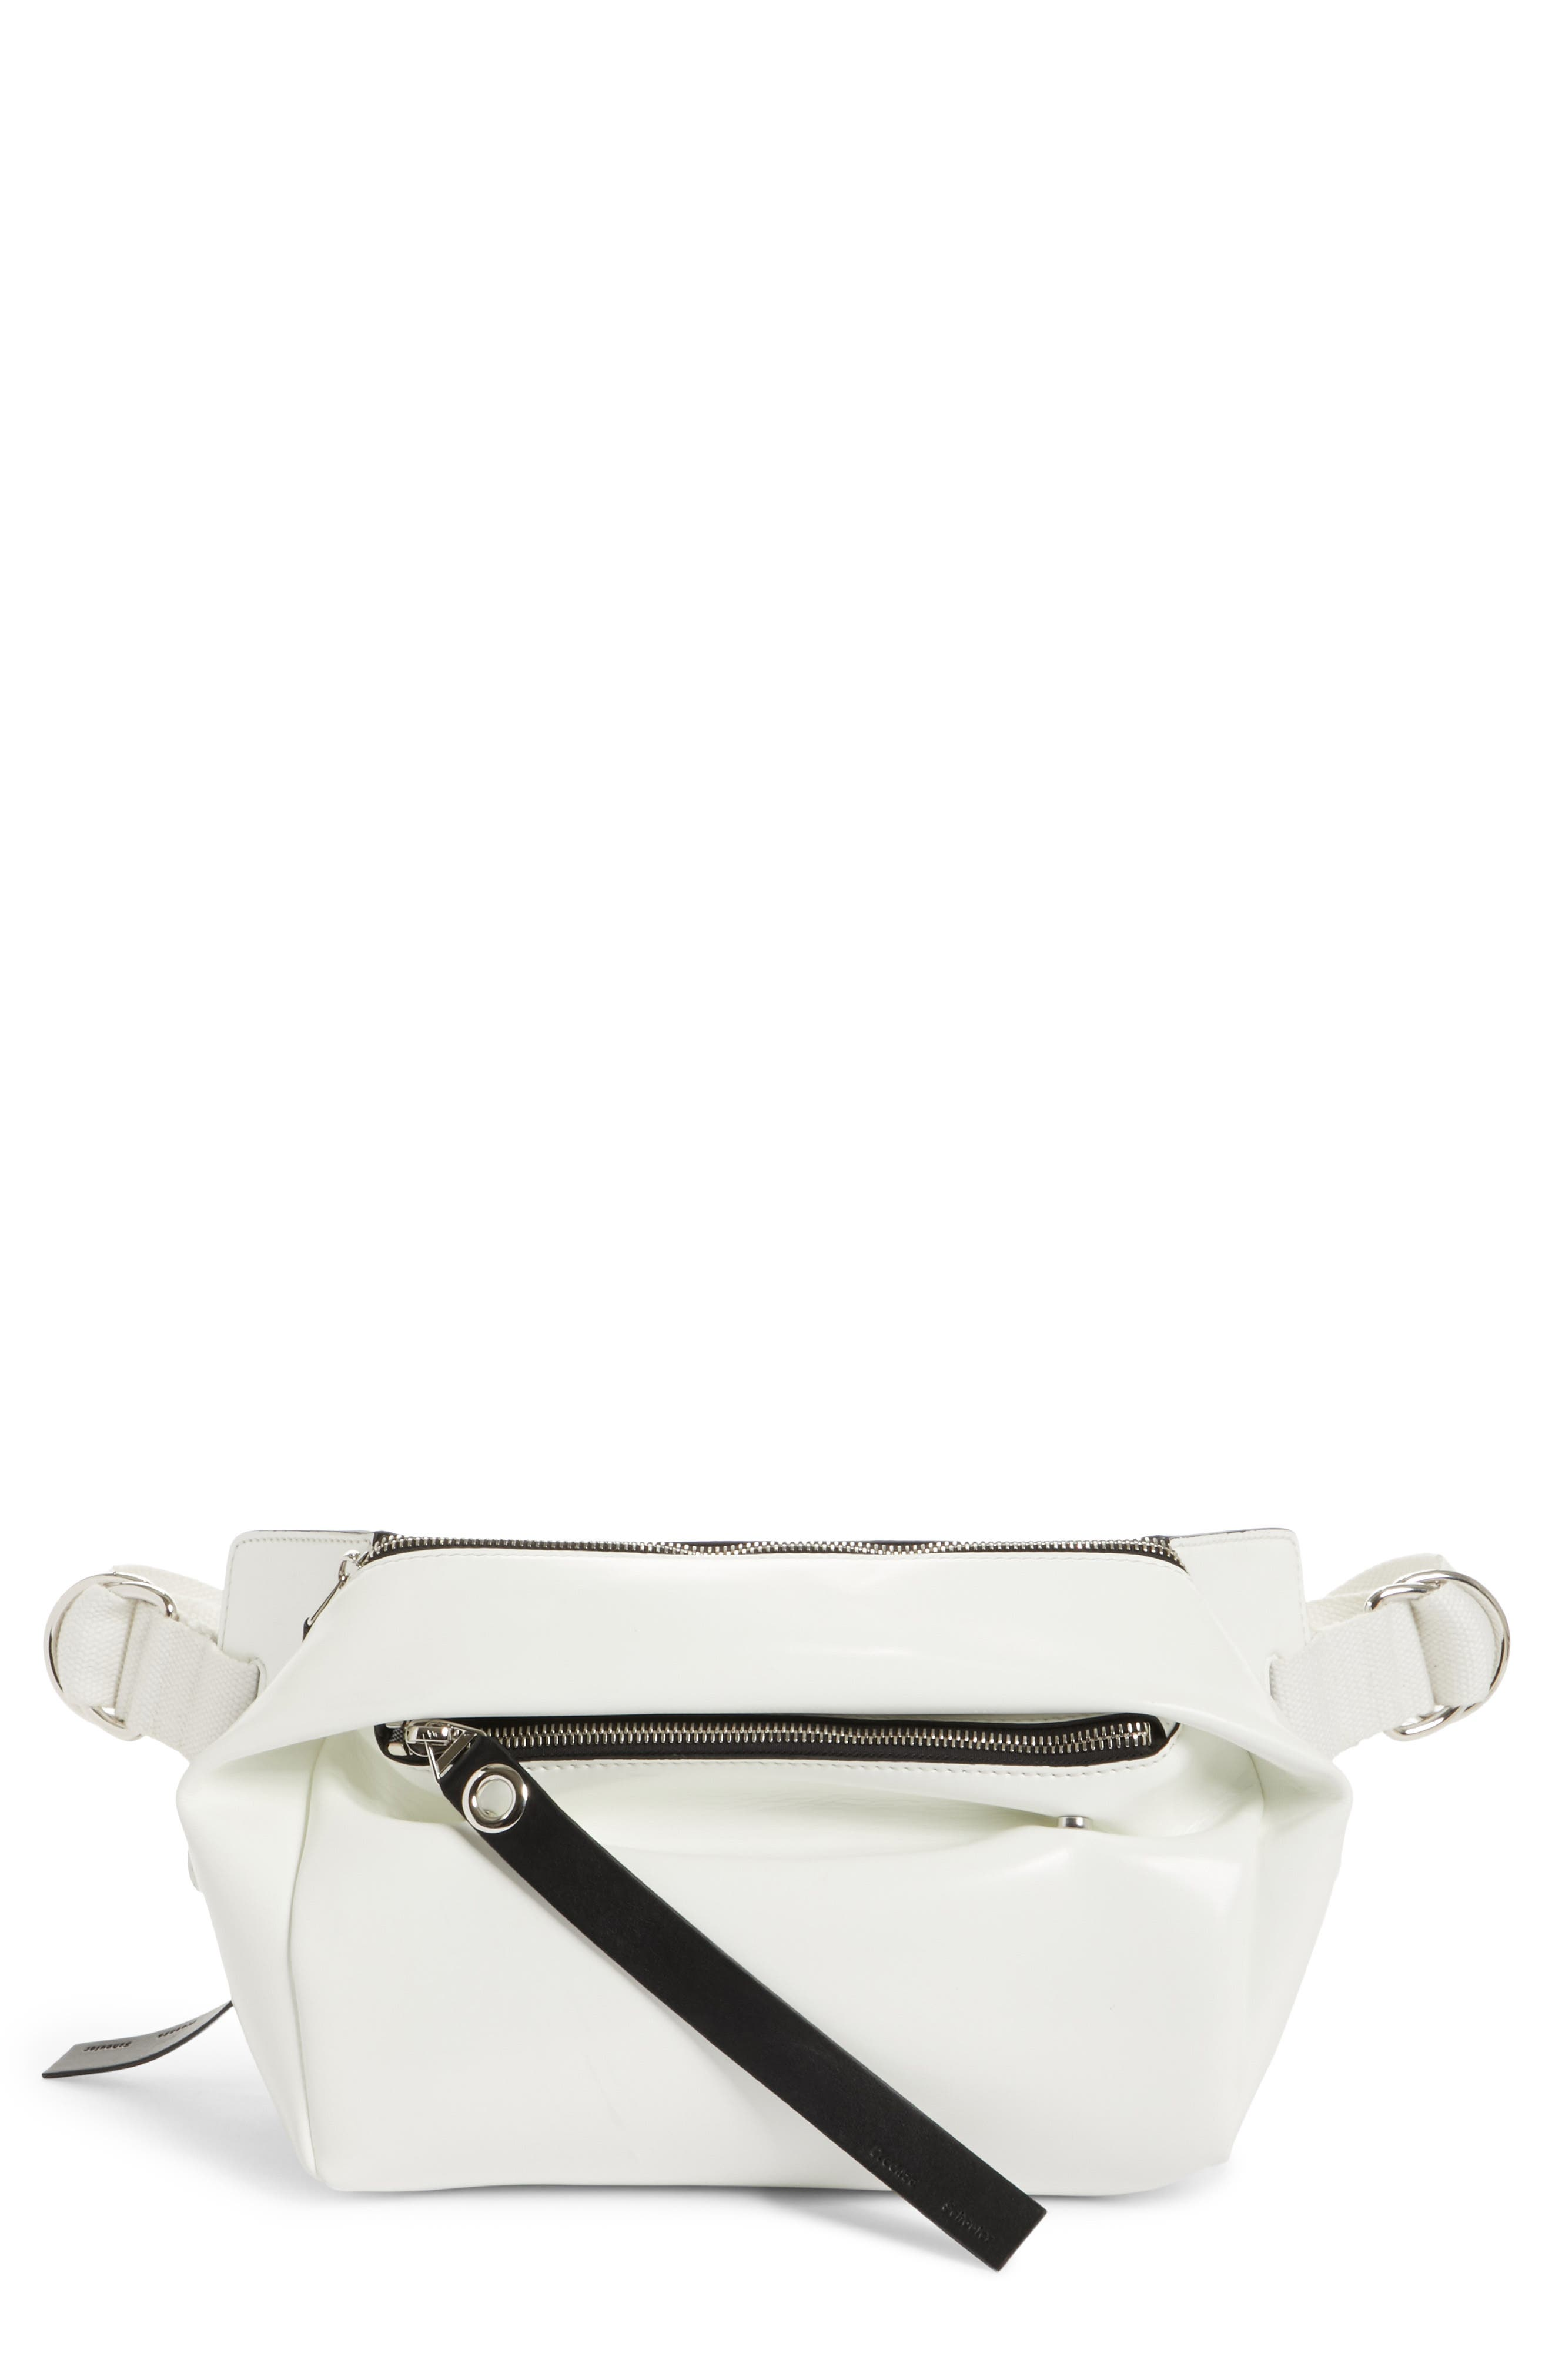 Alternate Image 1 Selected - Proenza Schouler PSWL Faux Leather Fanny Pack